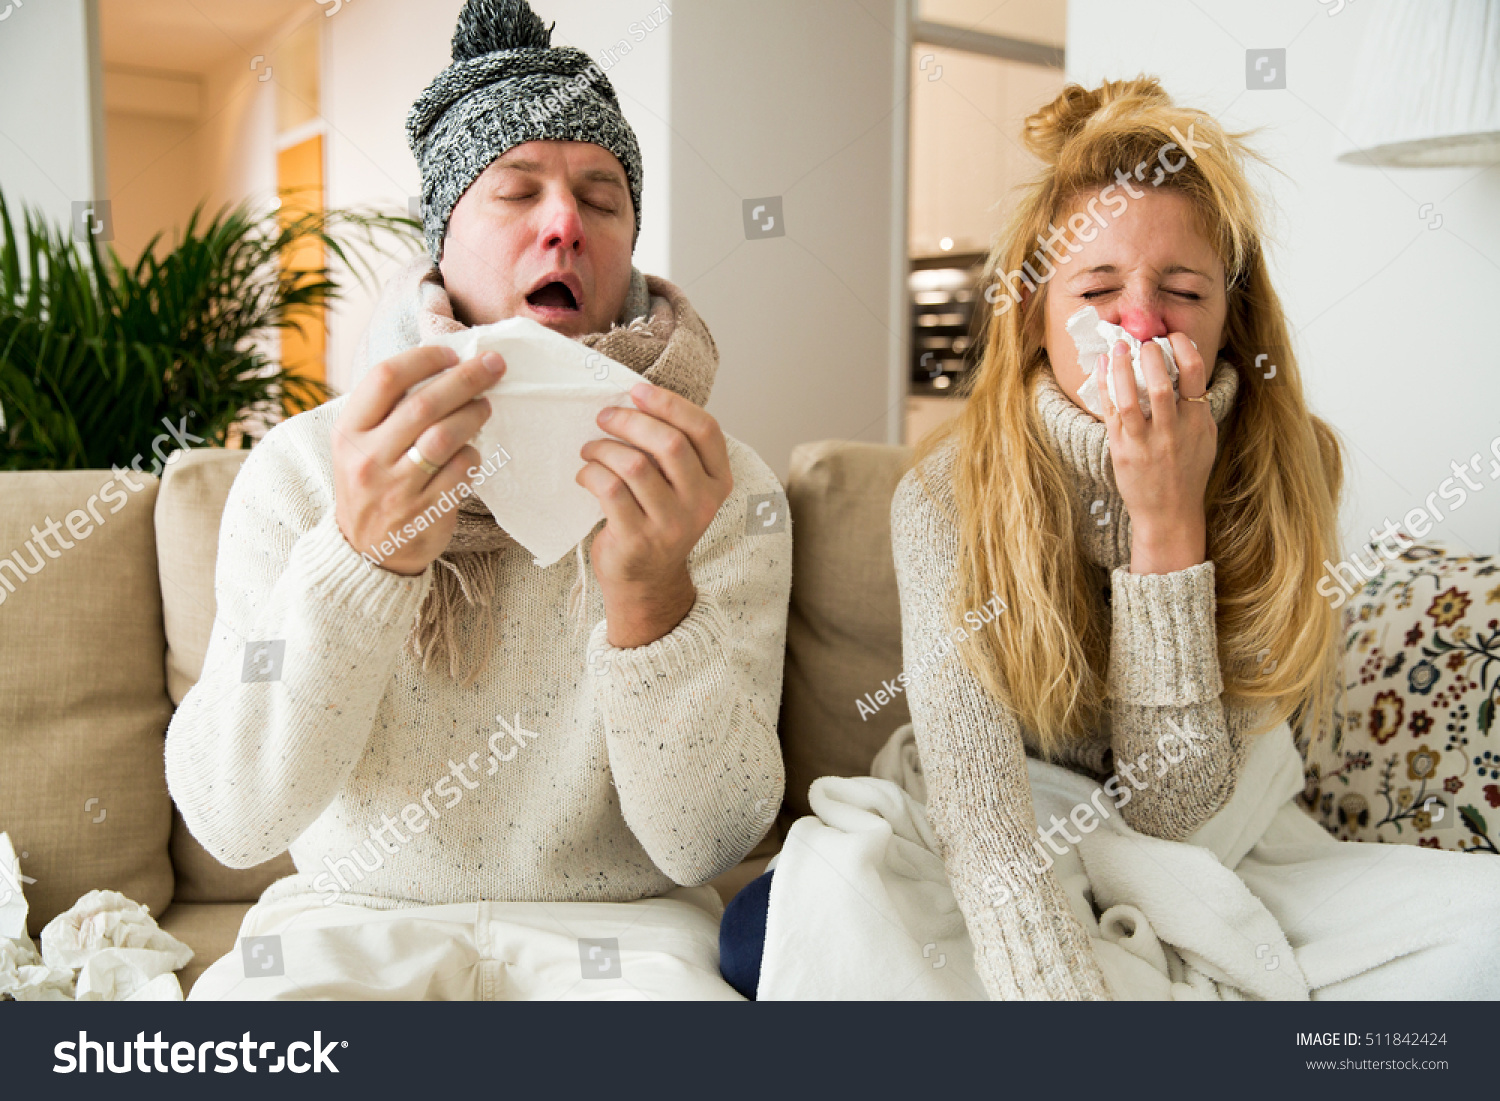 Sick couple catch cold. Man and woman sneezing, coughing. People got flu, having runny nose.  #511842424